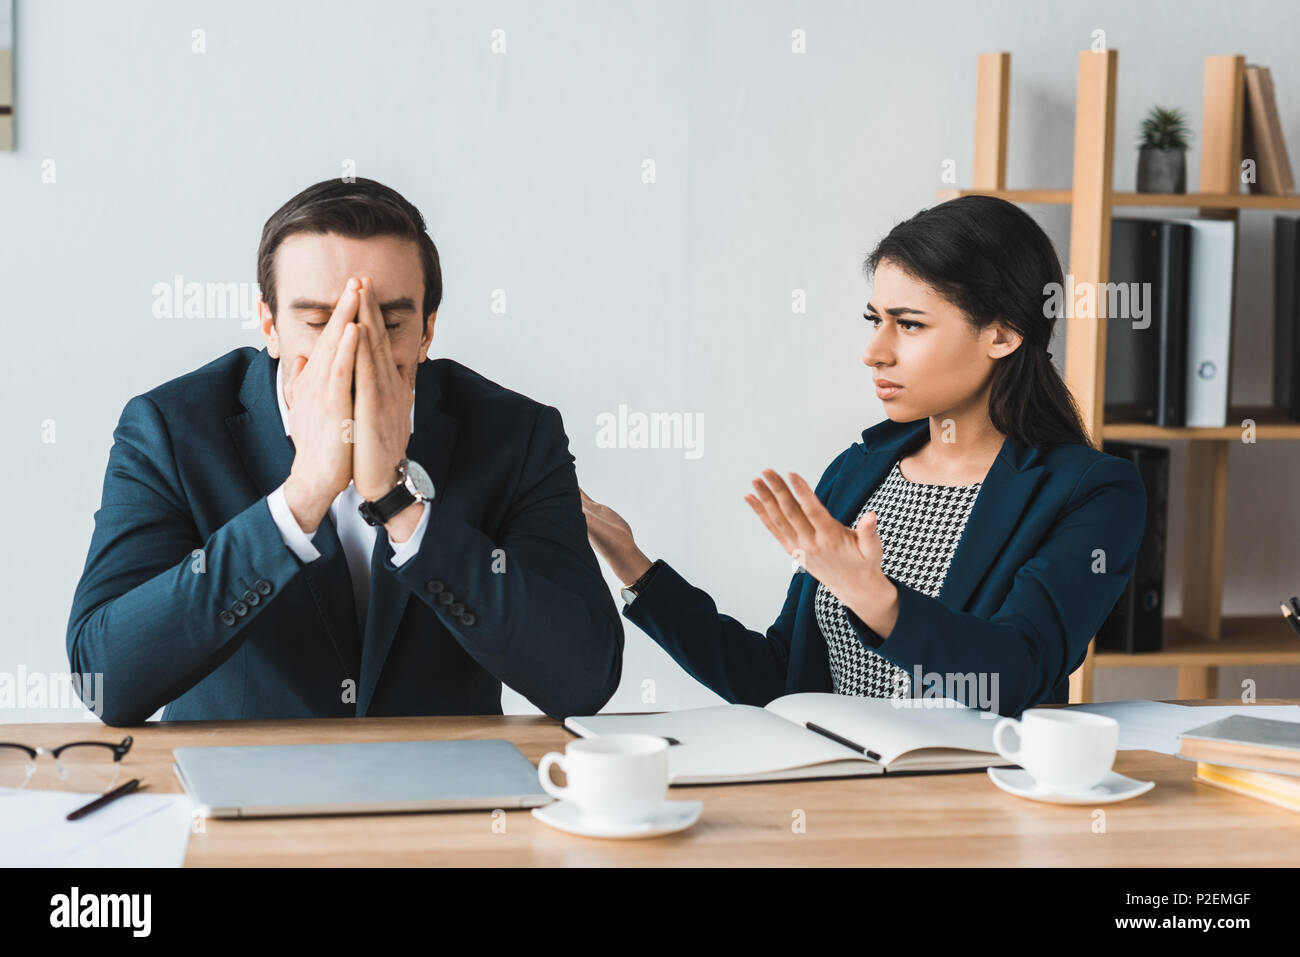 Colleagues in business suits arguing about project details in office - Stock Image